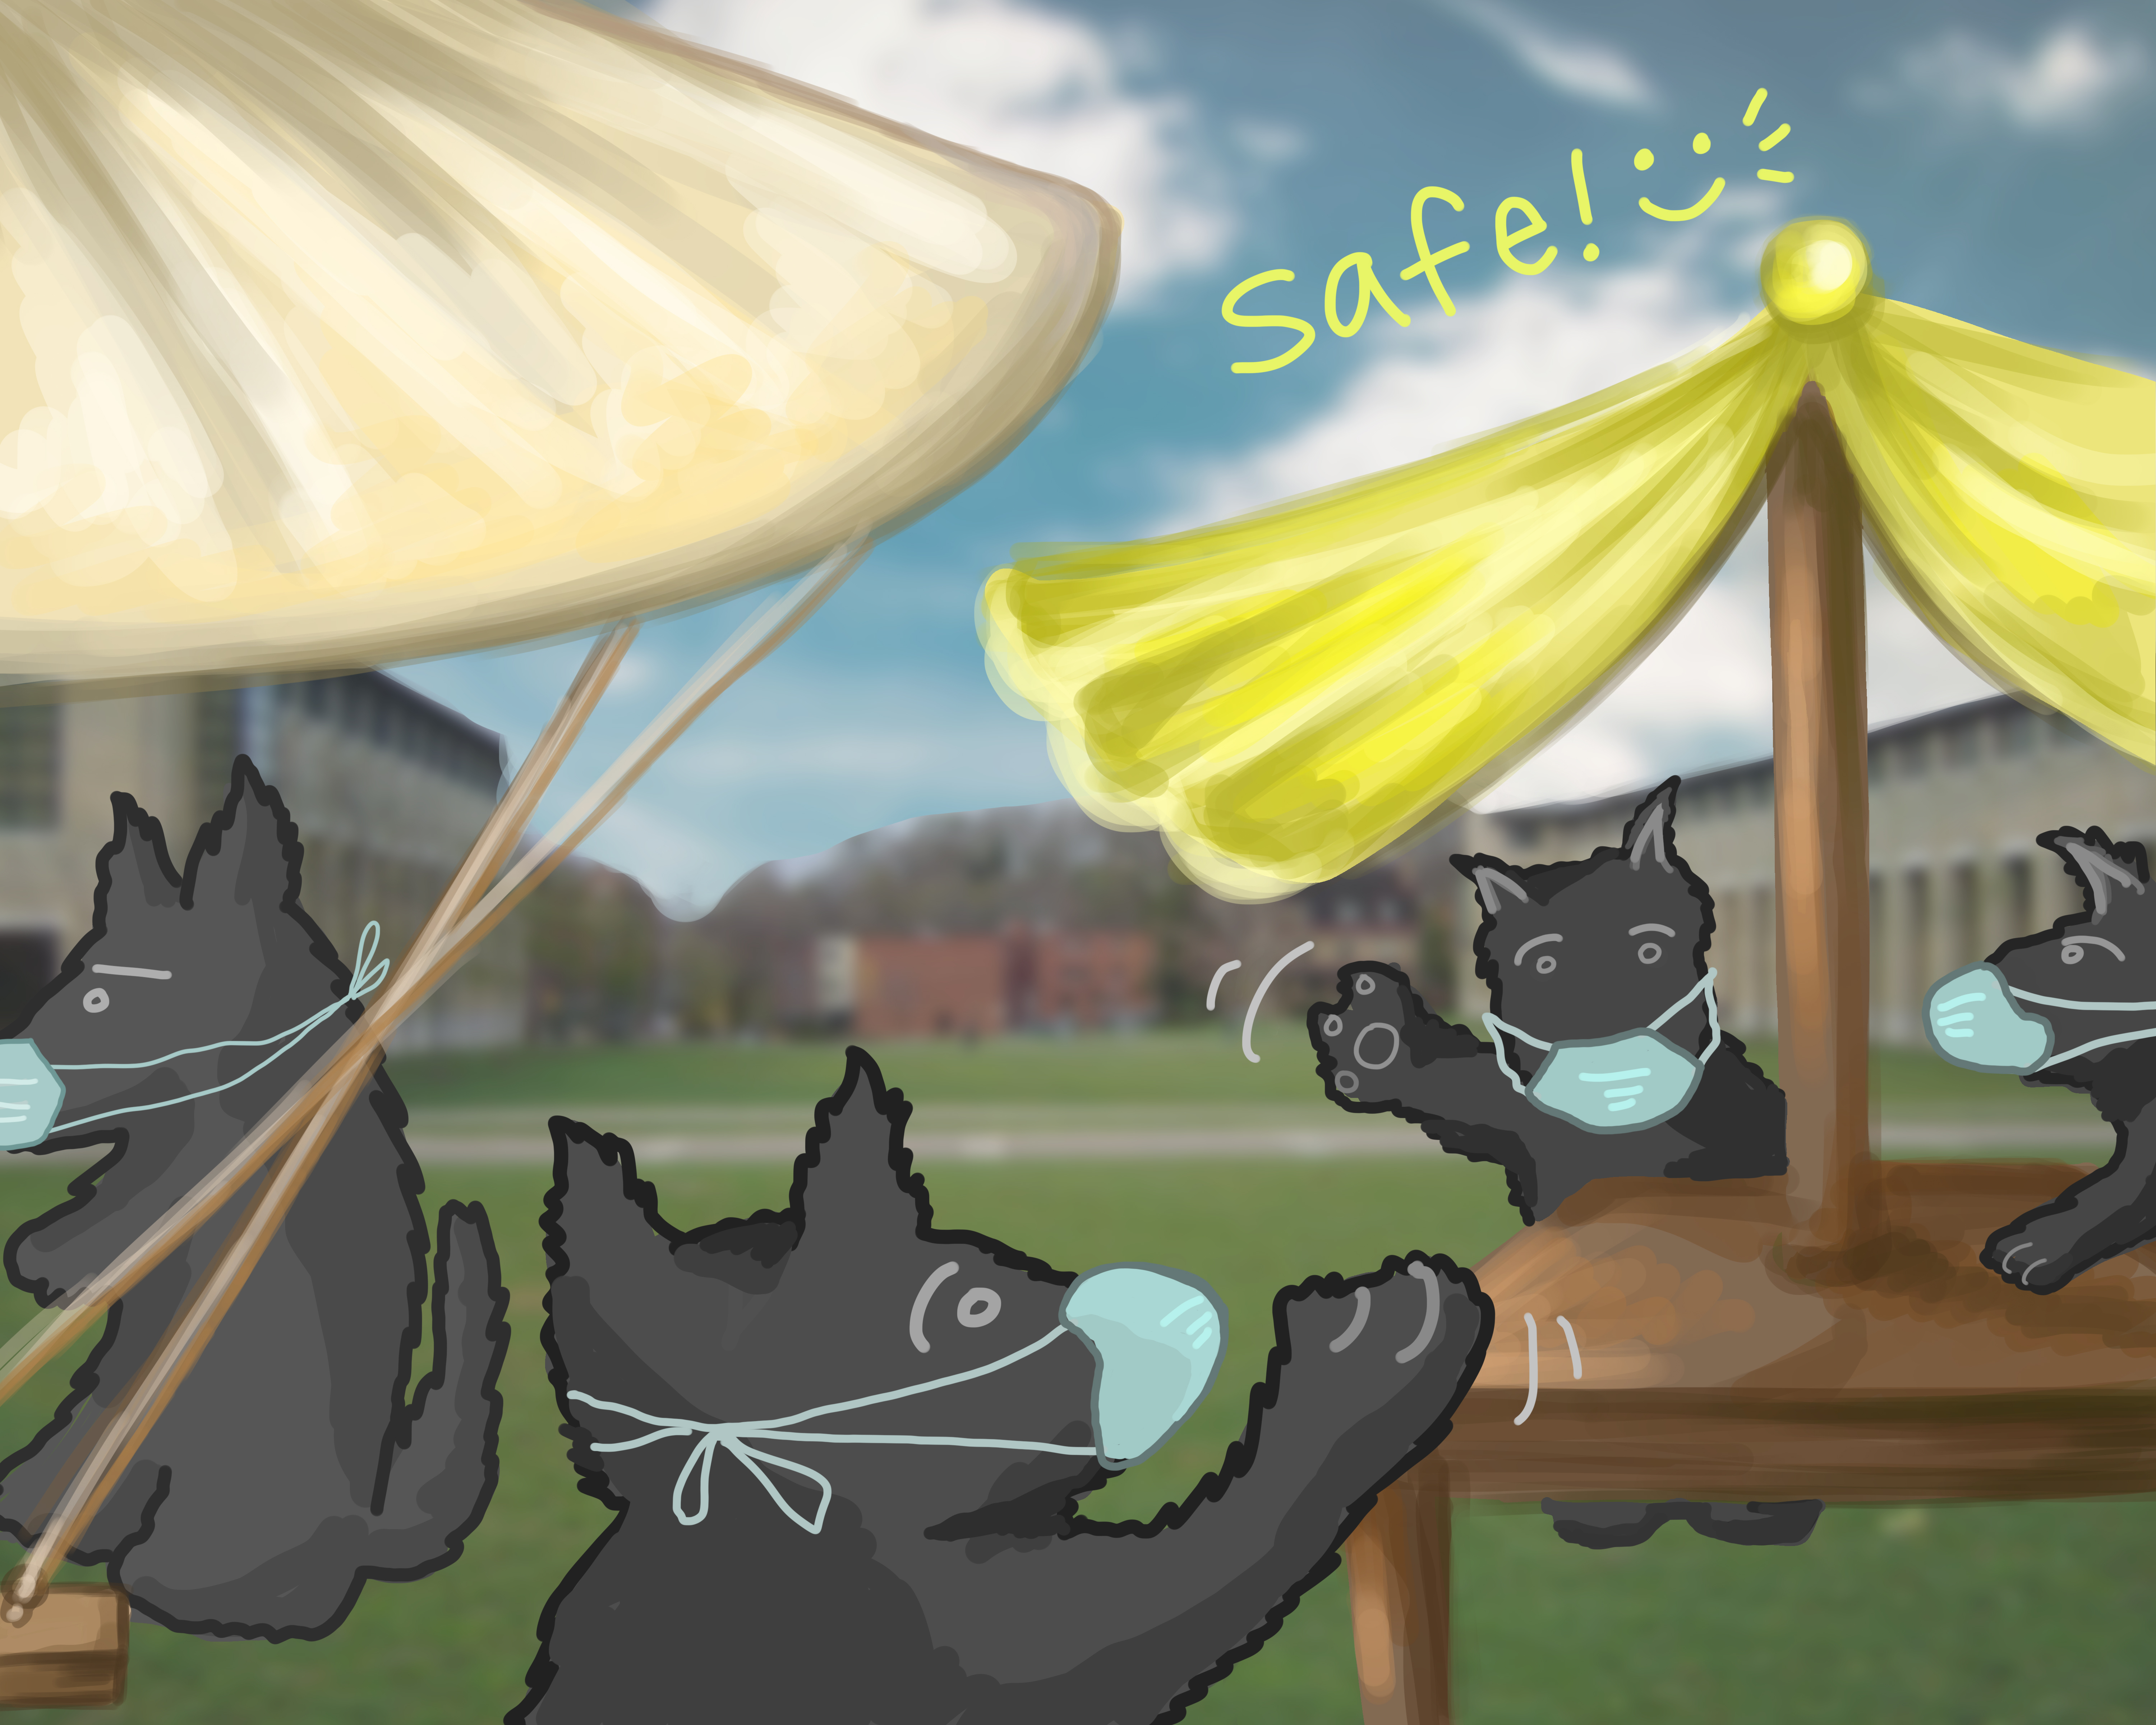 Safe outdoor spaces can help alleviate student loneliness during the pandemic. (credit: Stacey Cho/Art Editor )